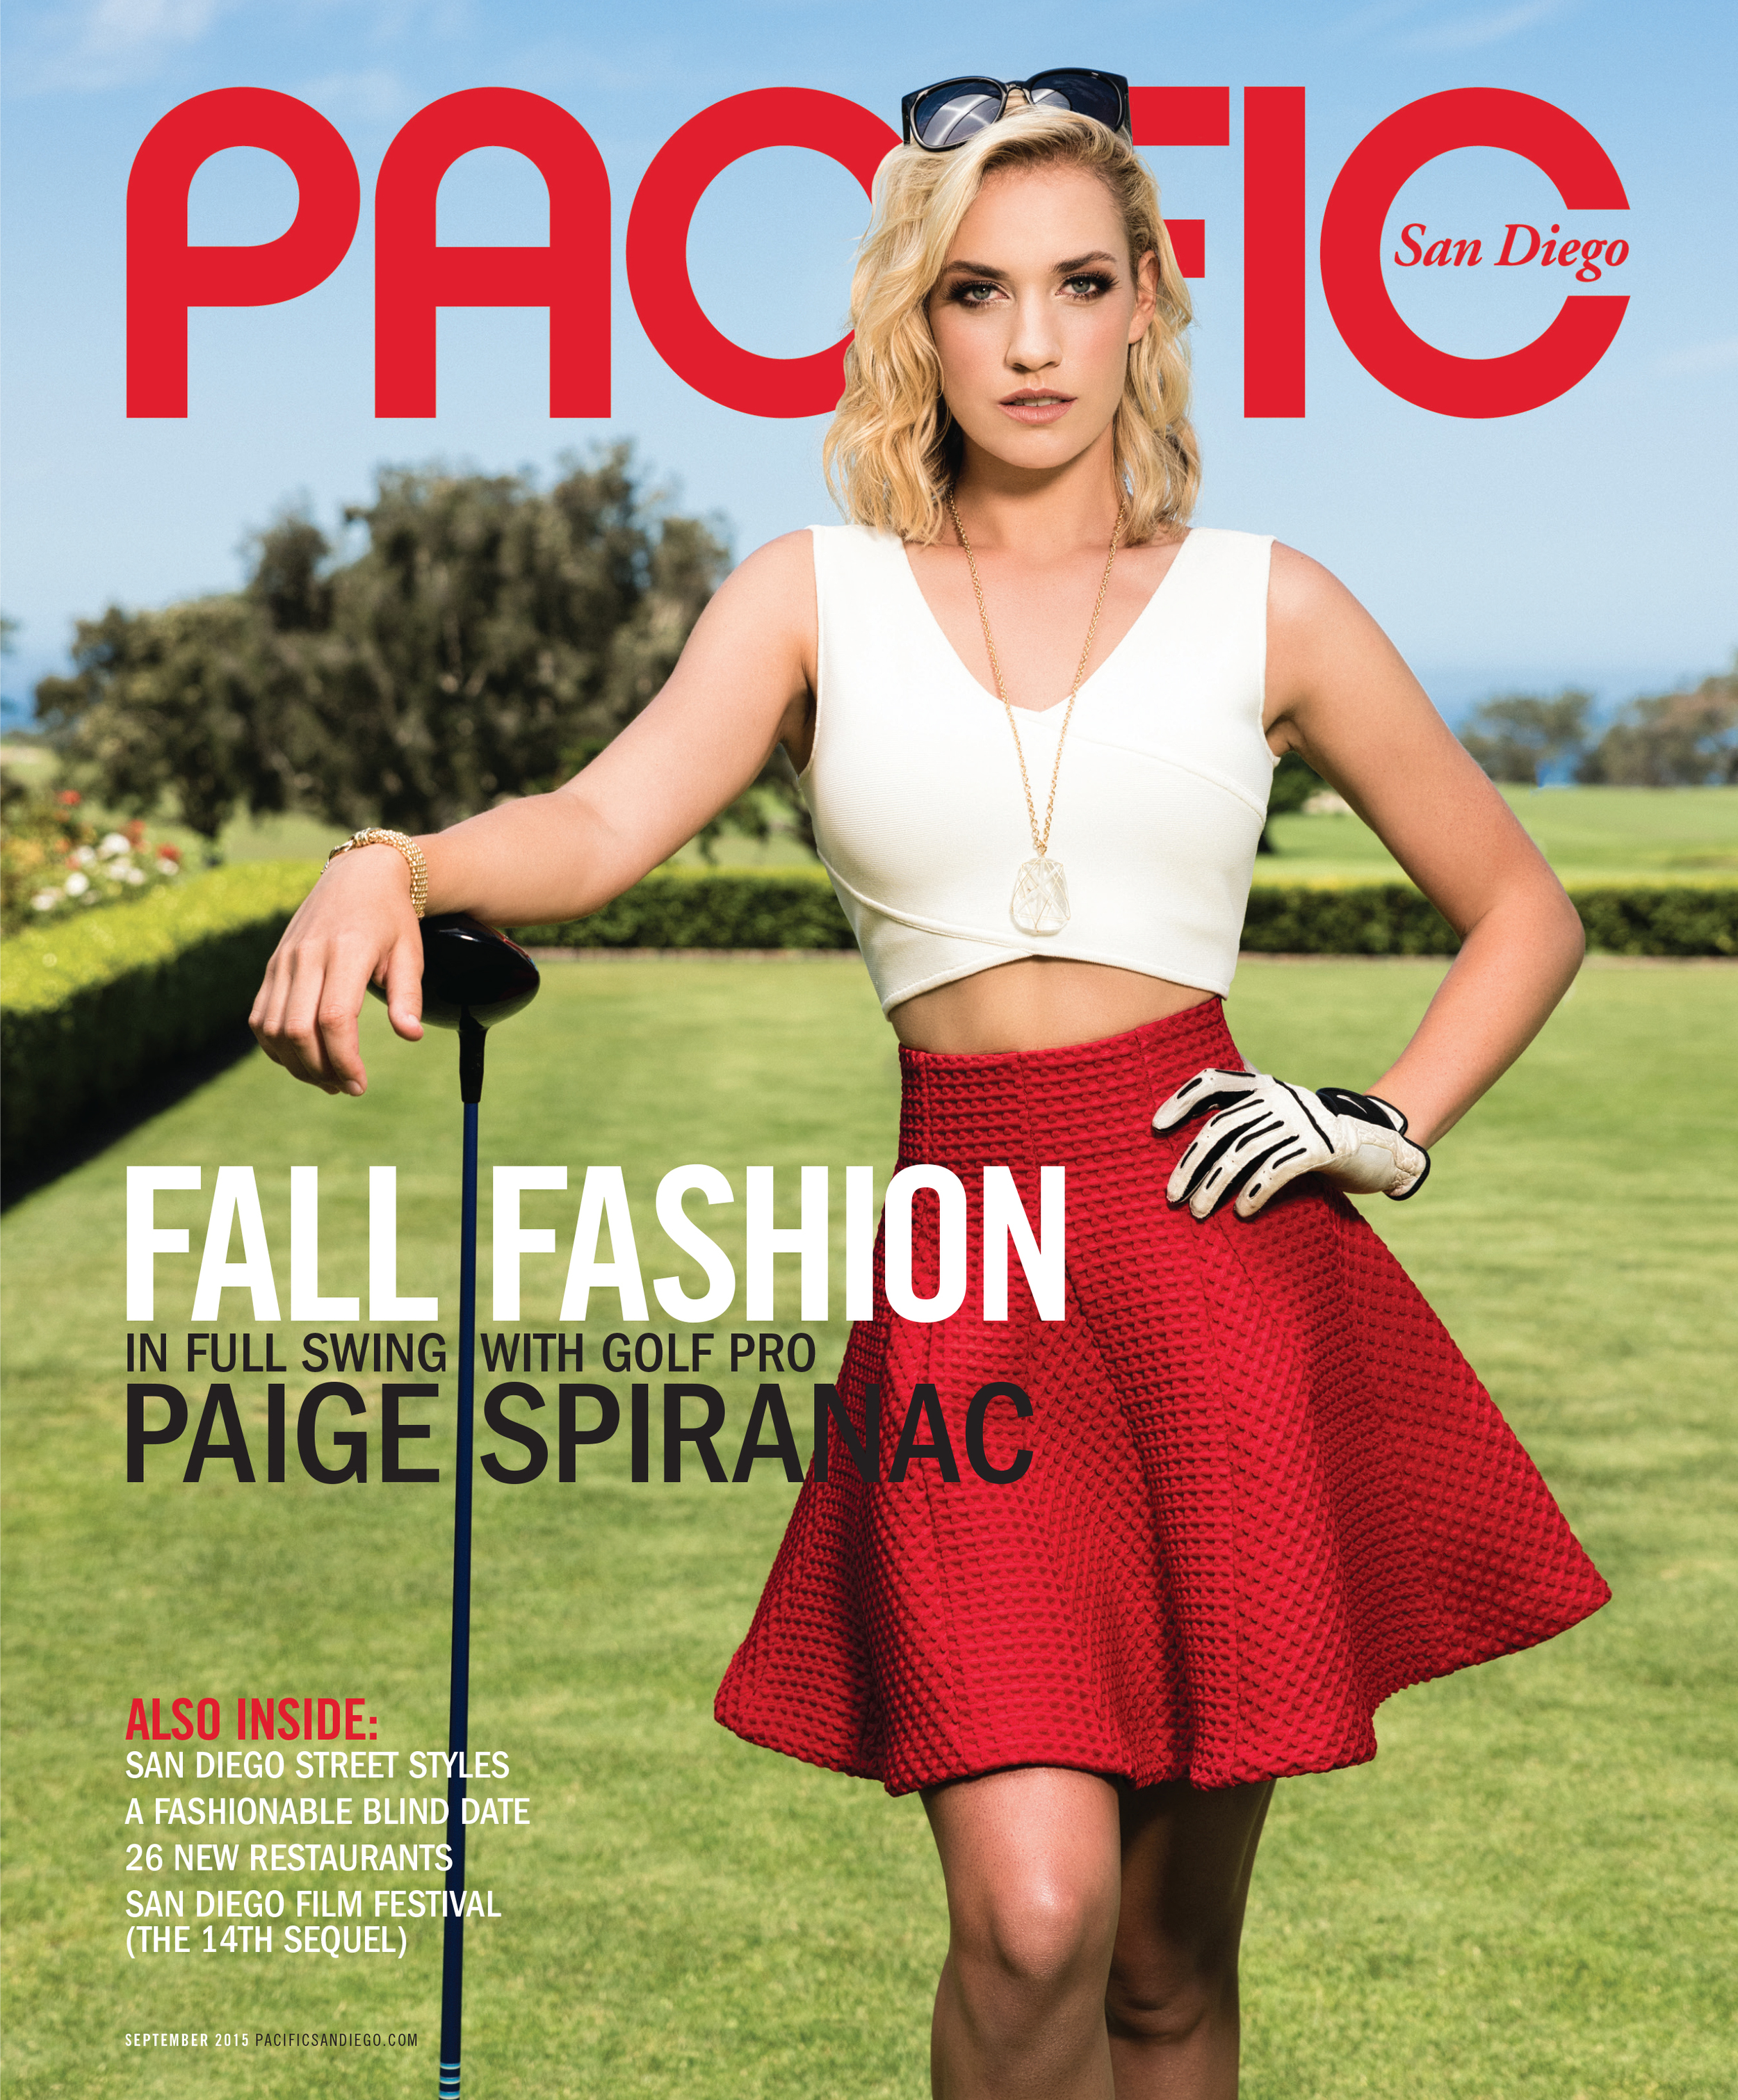 201509 Pacific San Diego Magazine September Cover.jpg